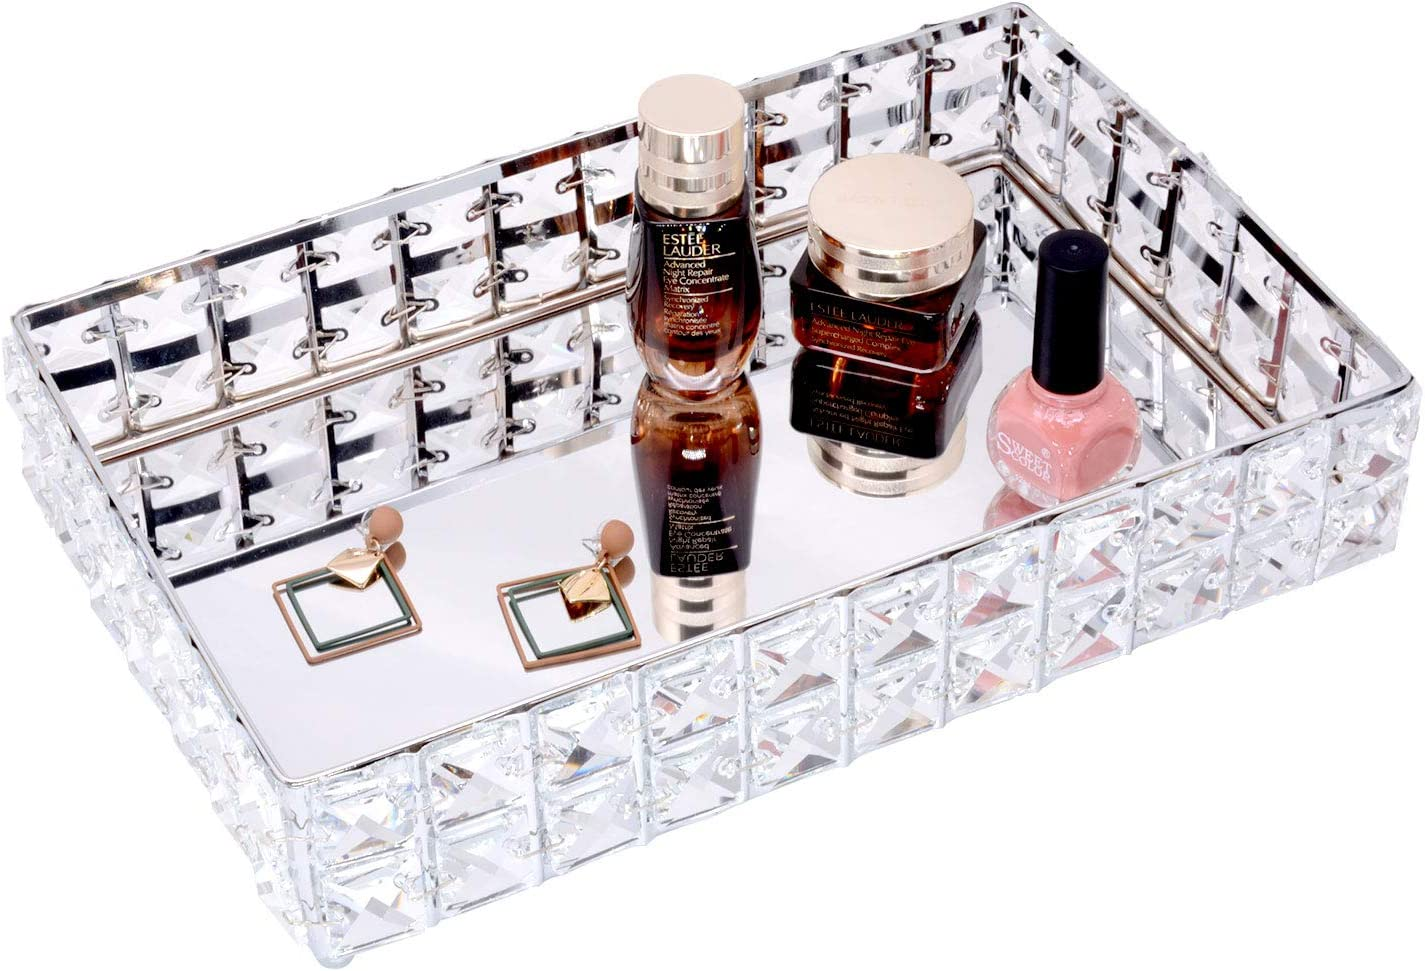 VoiceFly Rectangle Crystal Vanity Makeup Tray, Mirrored Sparkly Bling Jewelry Display Tray Organizer for Storage Perfume, Toiletries, Trinket, Home Decor Tray for Dresser Vanity Table Bathroom, Silver